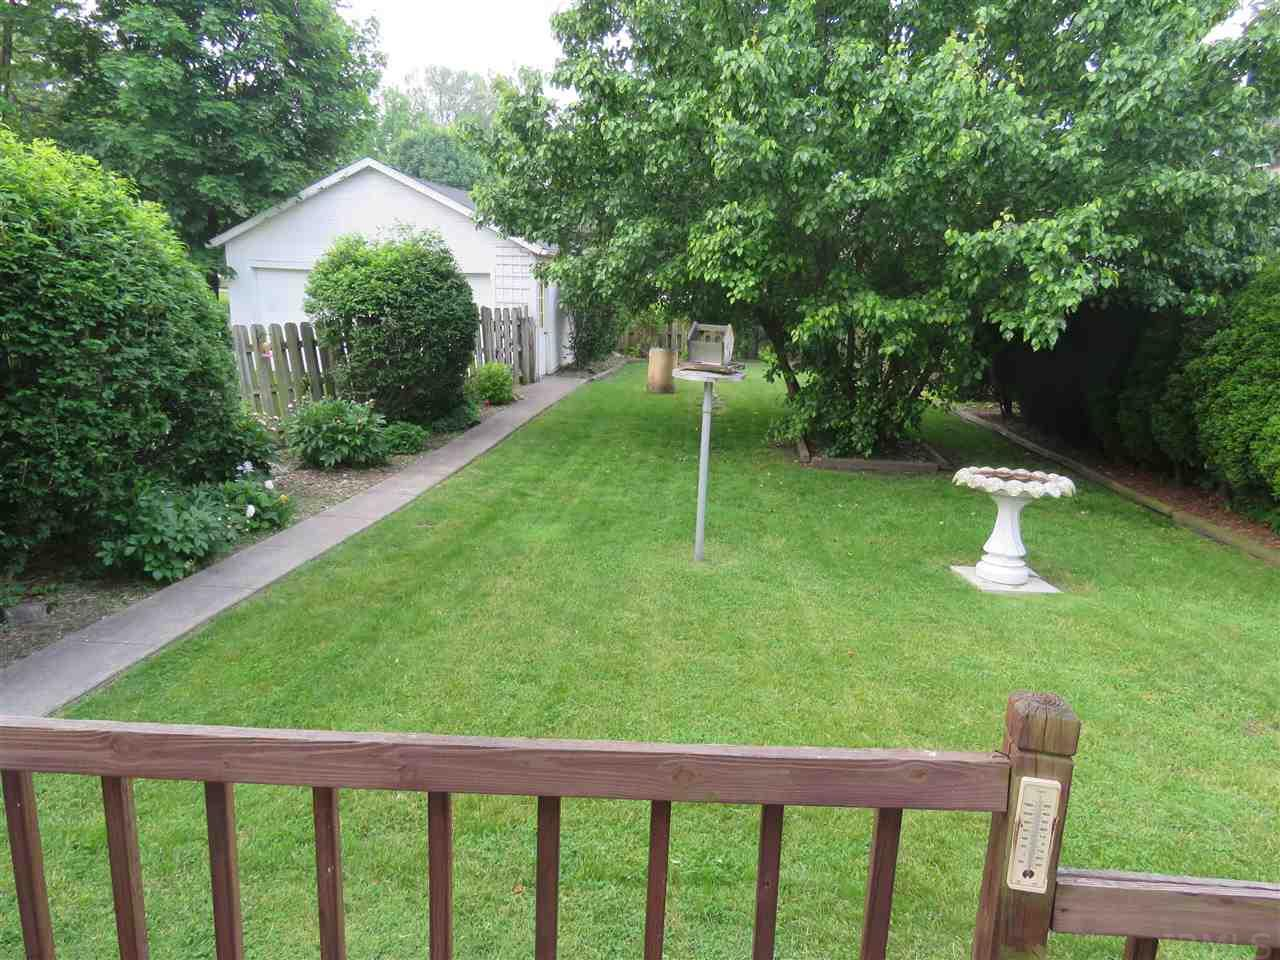 510 E Mitchell St., Kendallville, IN, 46755 - SOLD LISTING ...